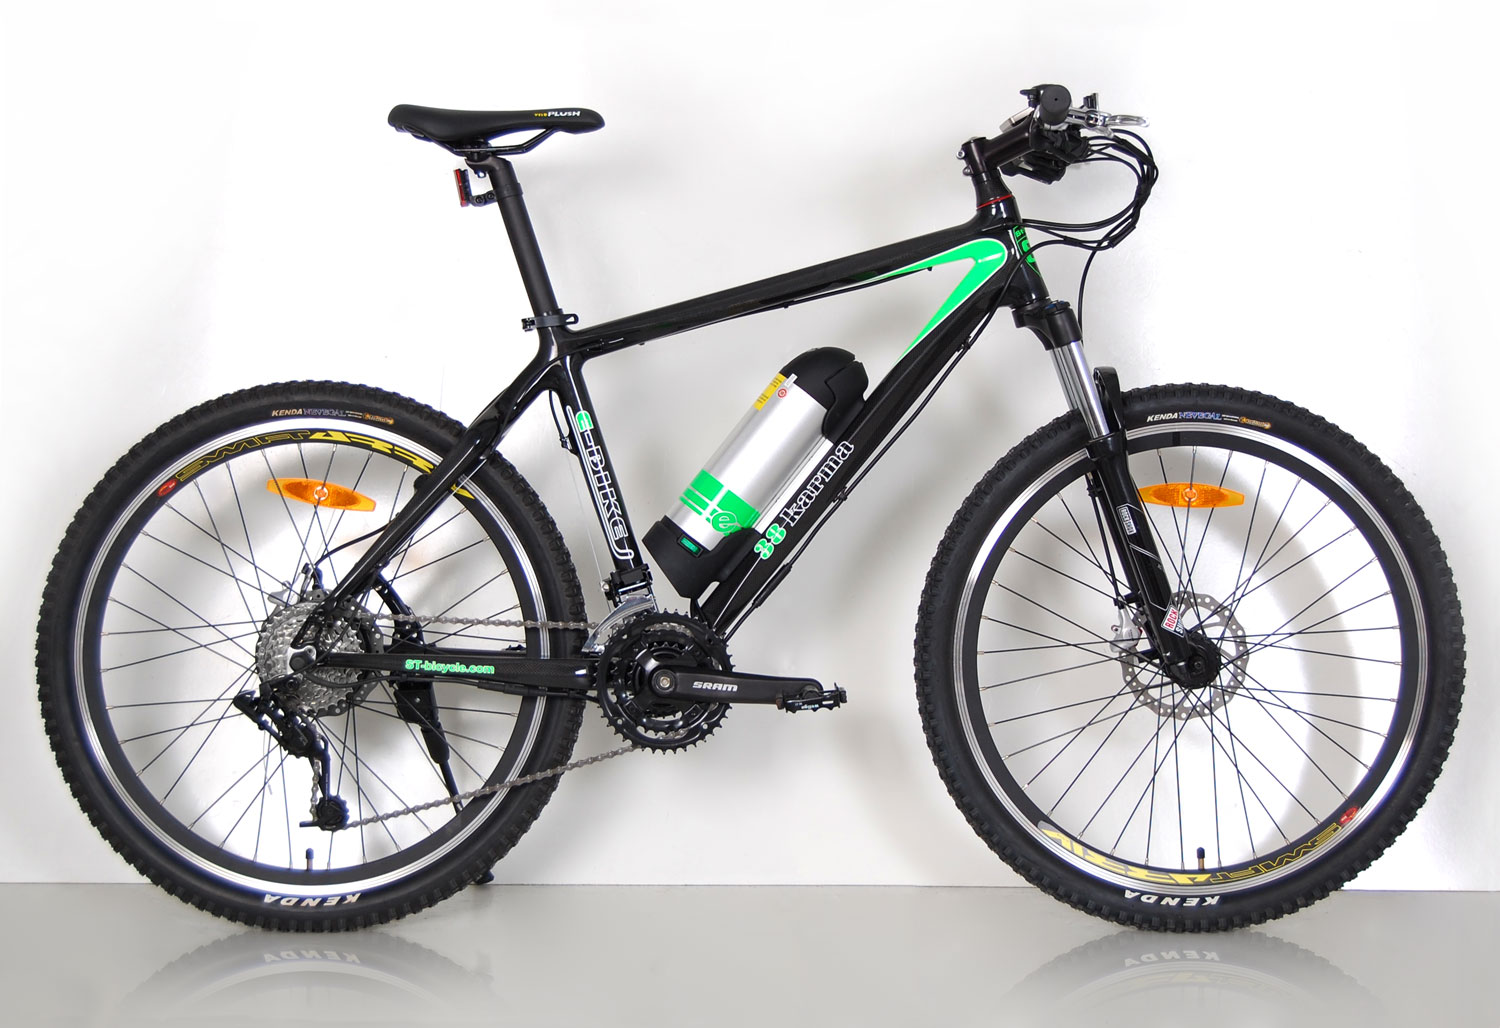 electric bicycle karma38 carbon mountain bike pedal assist. Black Bedroom Furniture Sets. Home Design Ideas